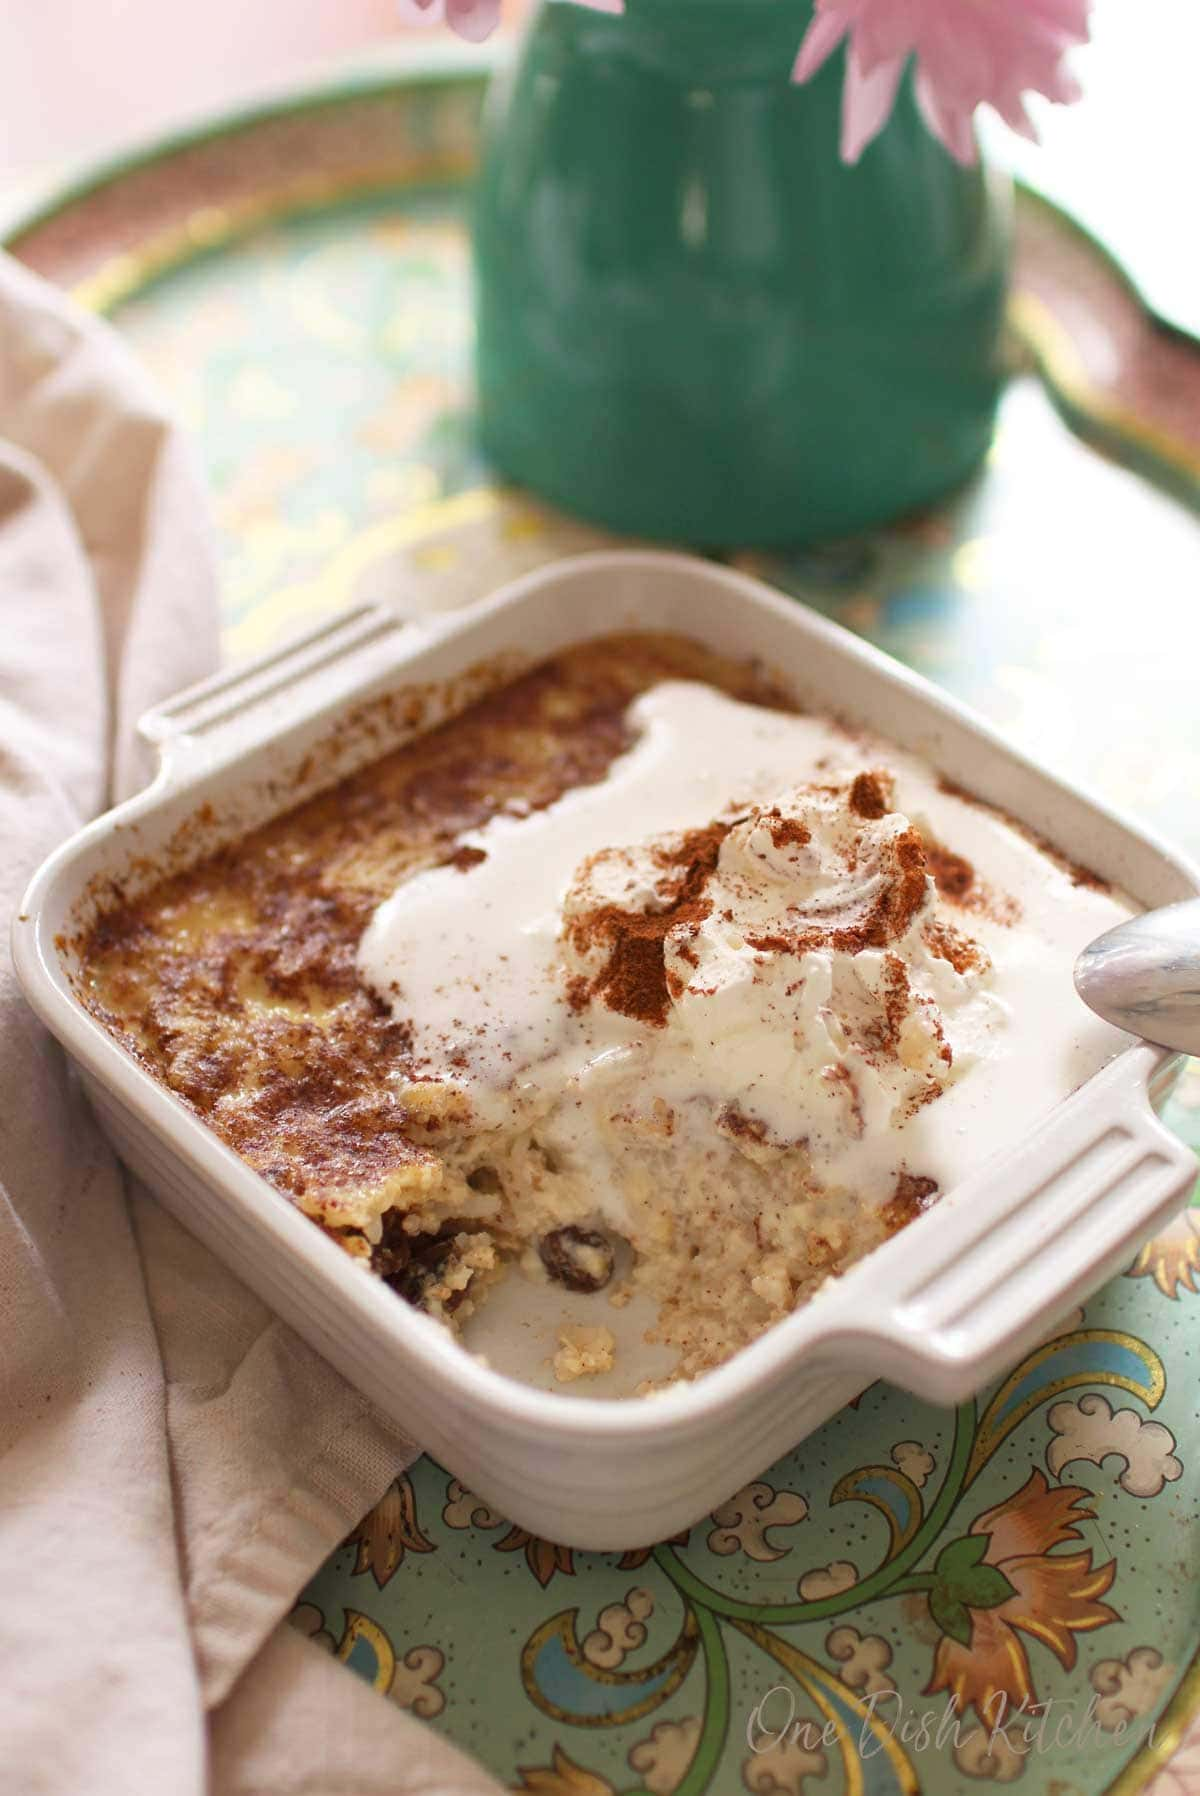 A spoonful missing from the homemade rice pudding topped with whipped cream and ground cinnamon in a small baking dish